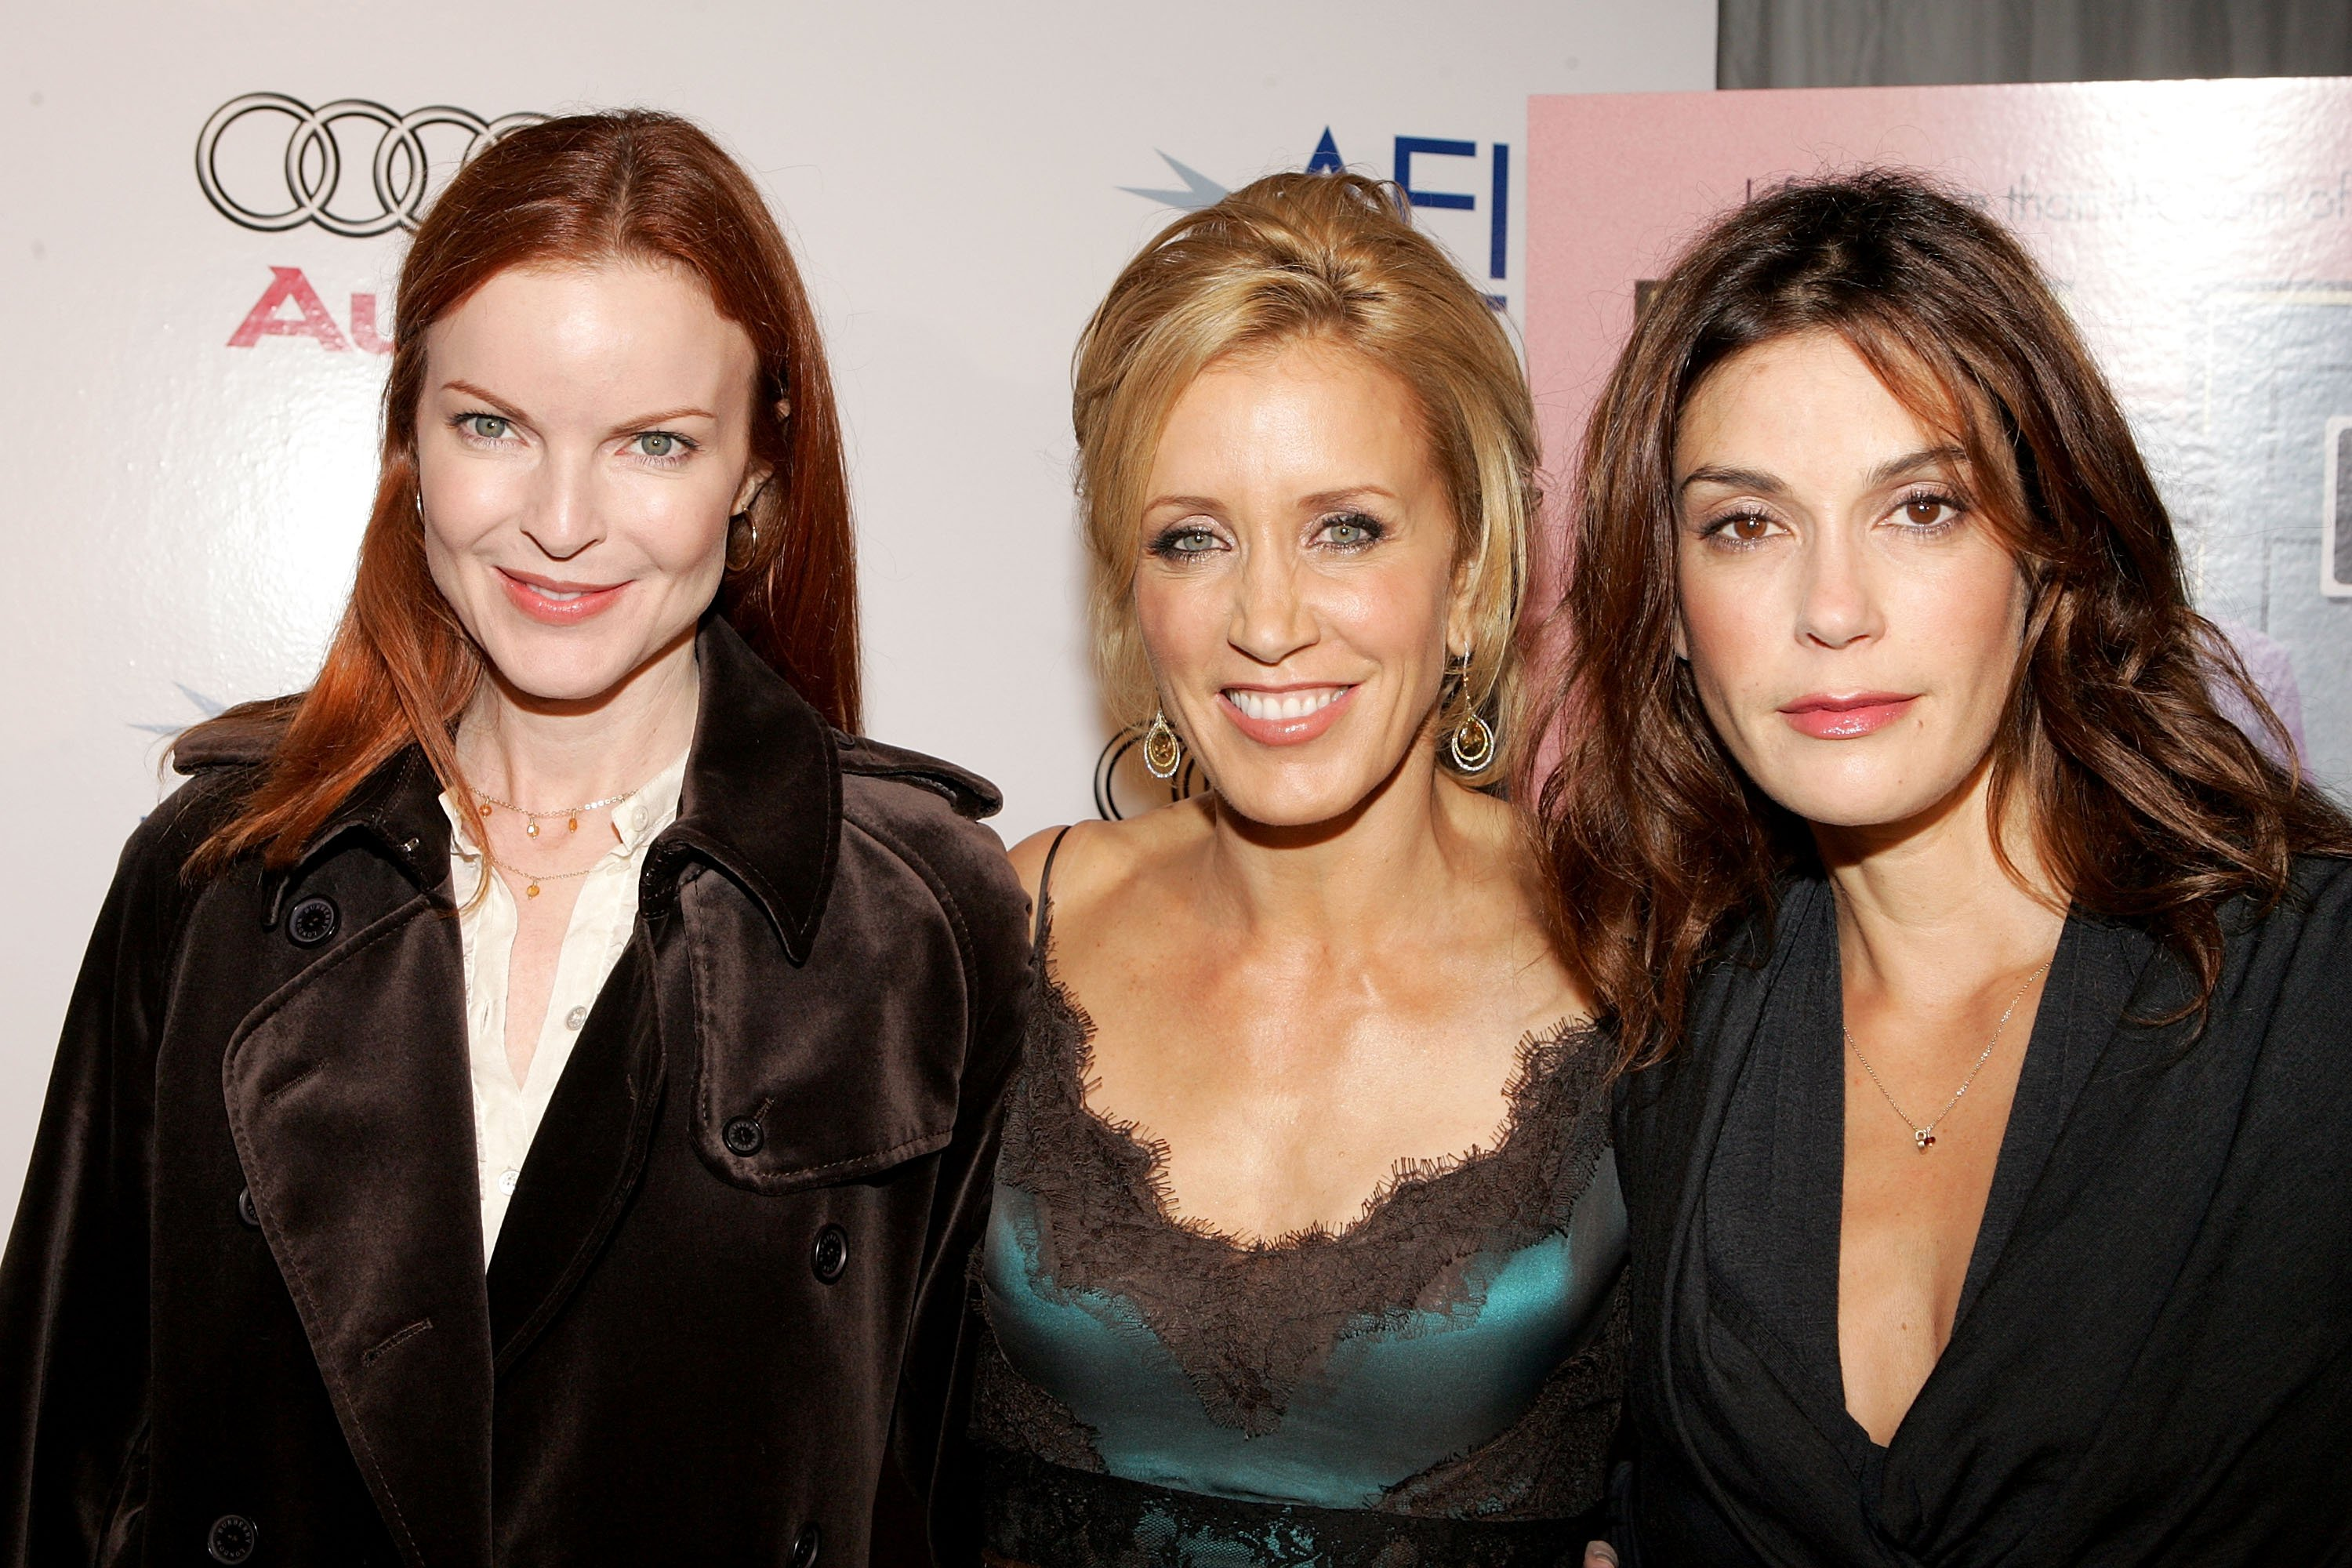 """Marcia Cross, Felicity Huffman and Teri Hatcher arrive to the special screening of the film """"Transamerica"""" during AFI Fest presented by Audi at the ArcLight Theatre November 6, 2005, in Hollywood, California. 